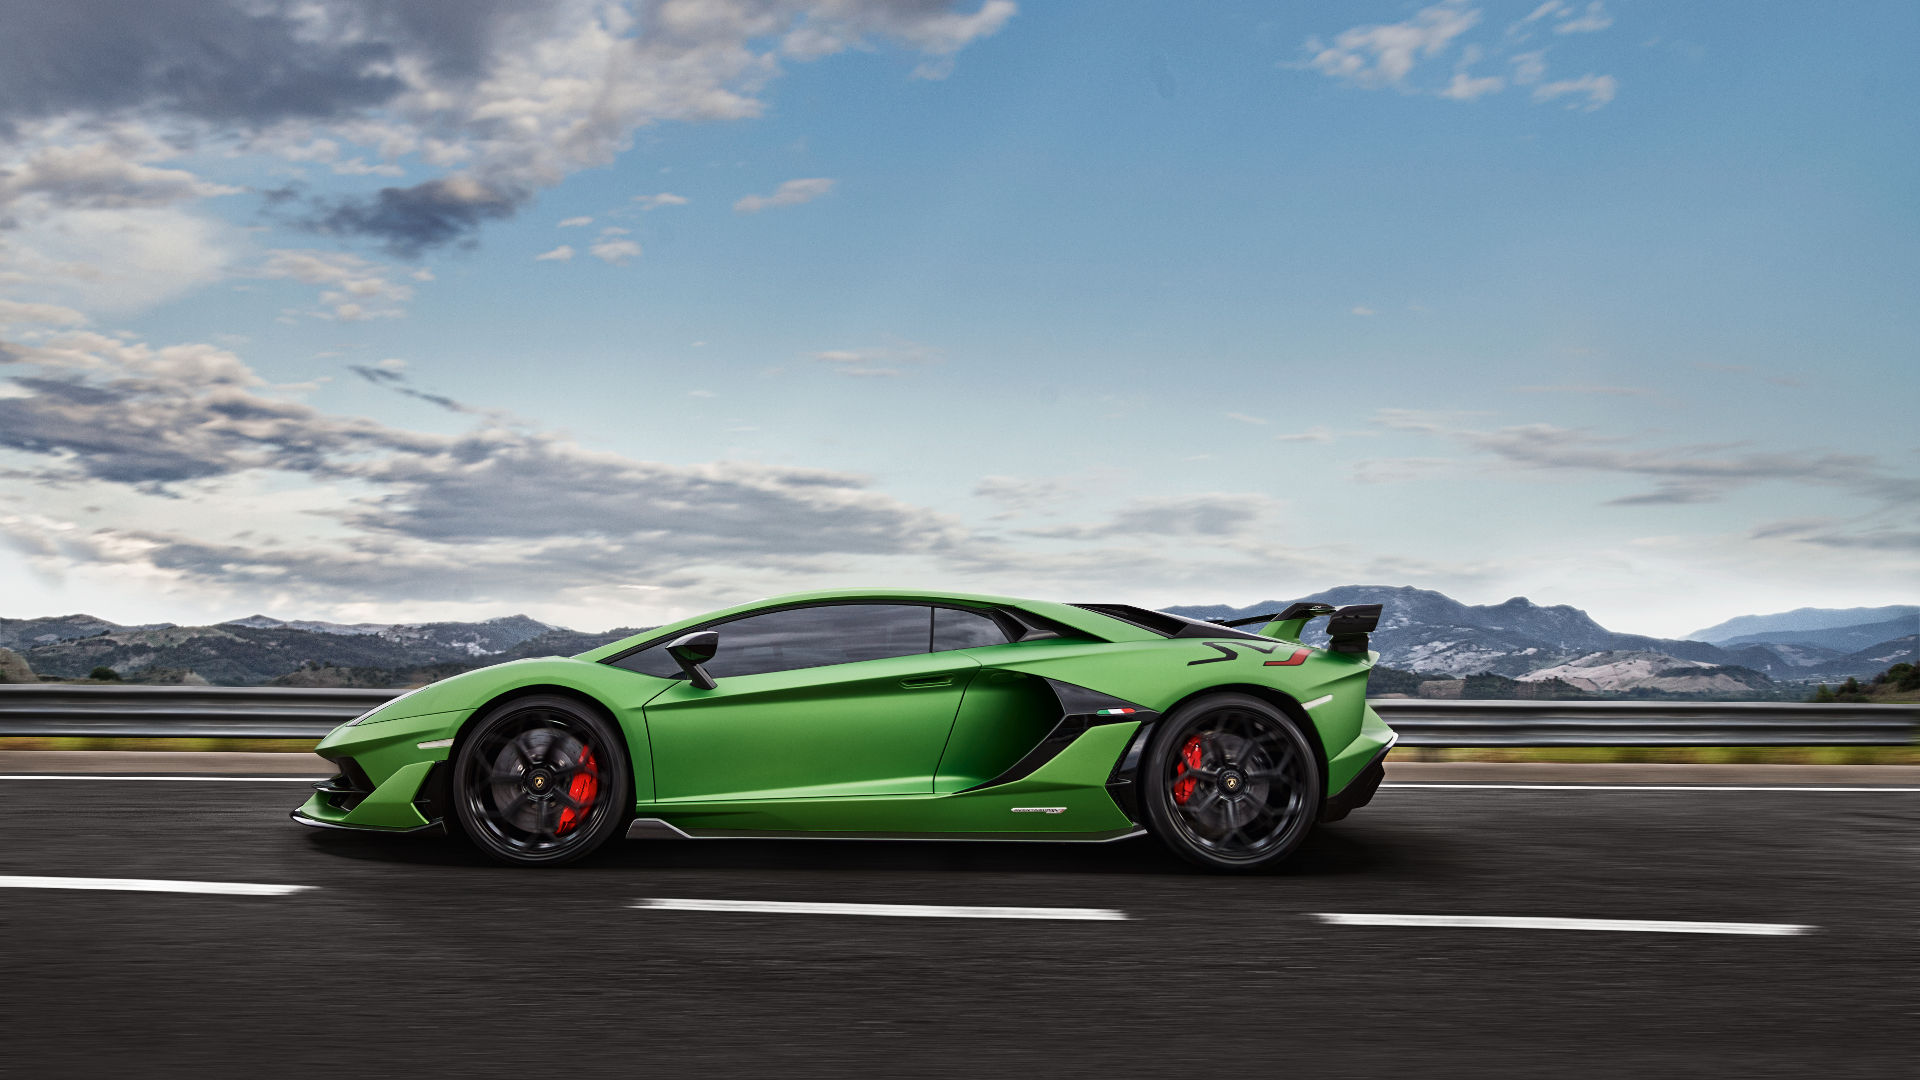 Super Car Wallpaper Hd For Mobile Aventador Svj Unveiled At Monterey Car Week